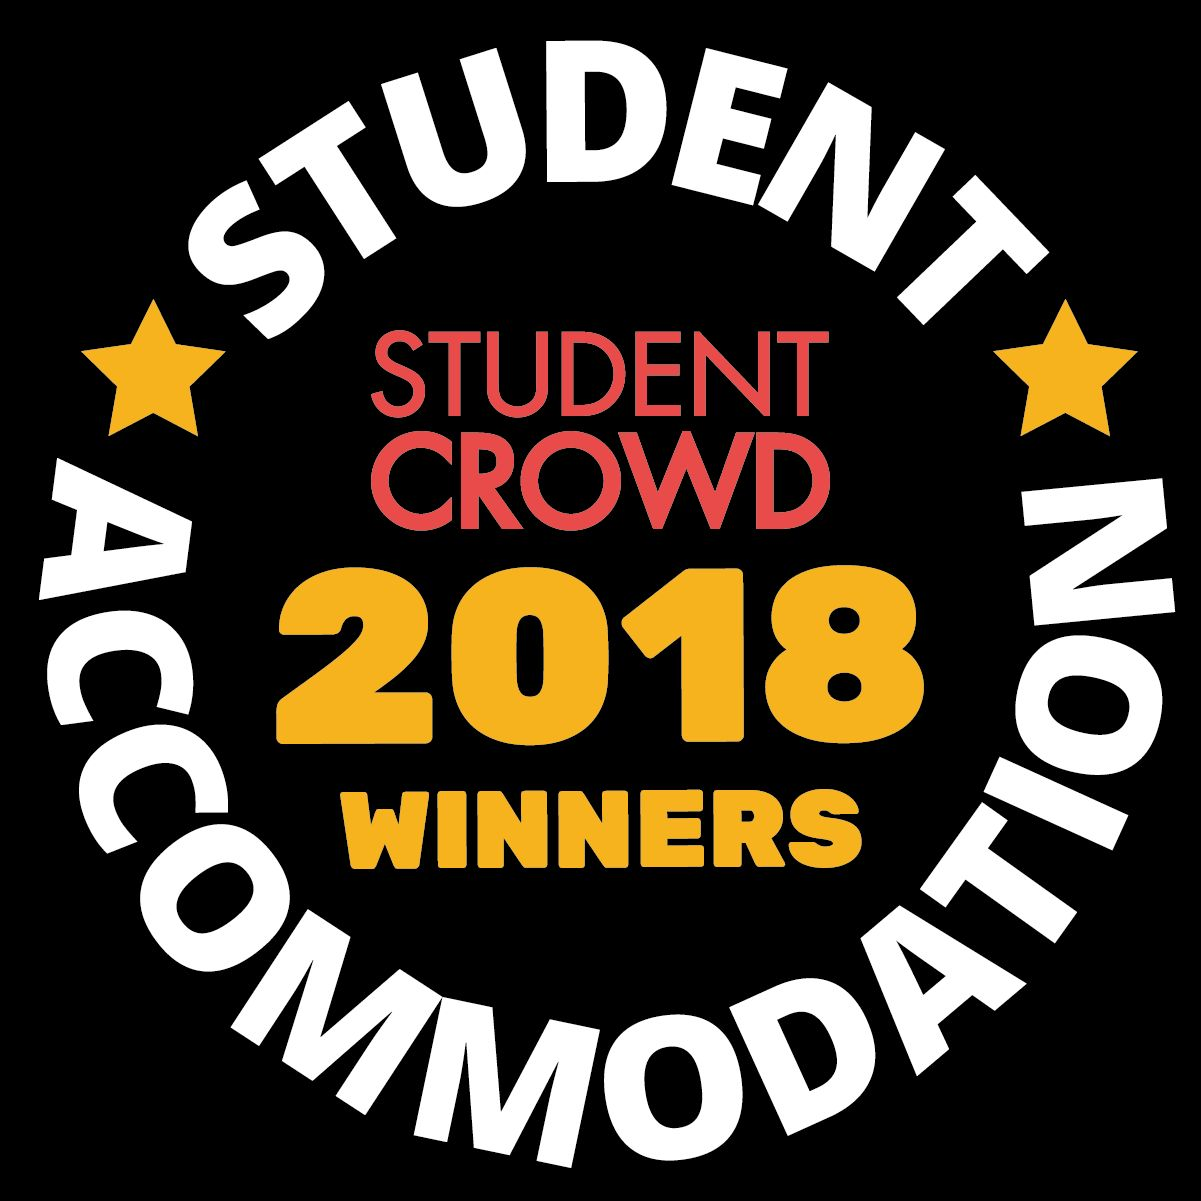 A student Crowd logo with a badge to represent Loughborough University winning Best UK University Accommodation